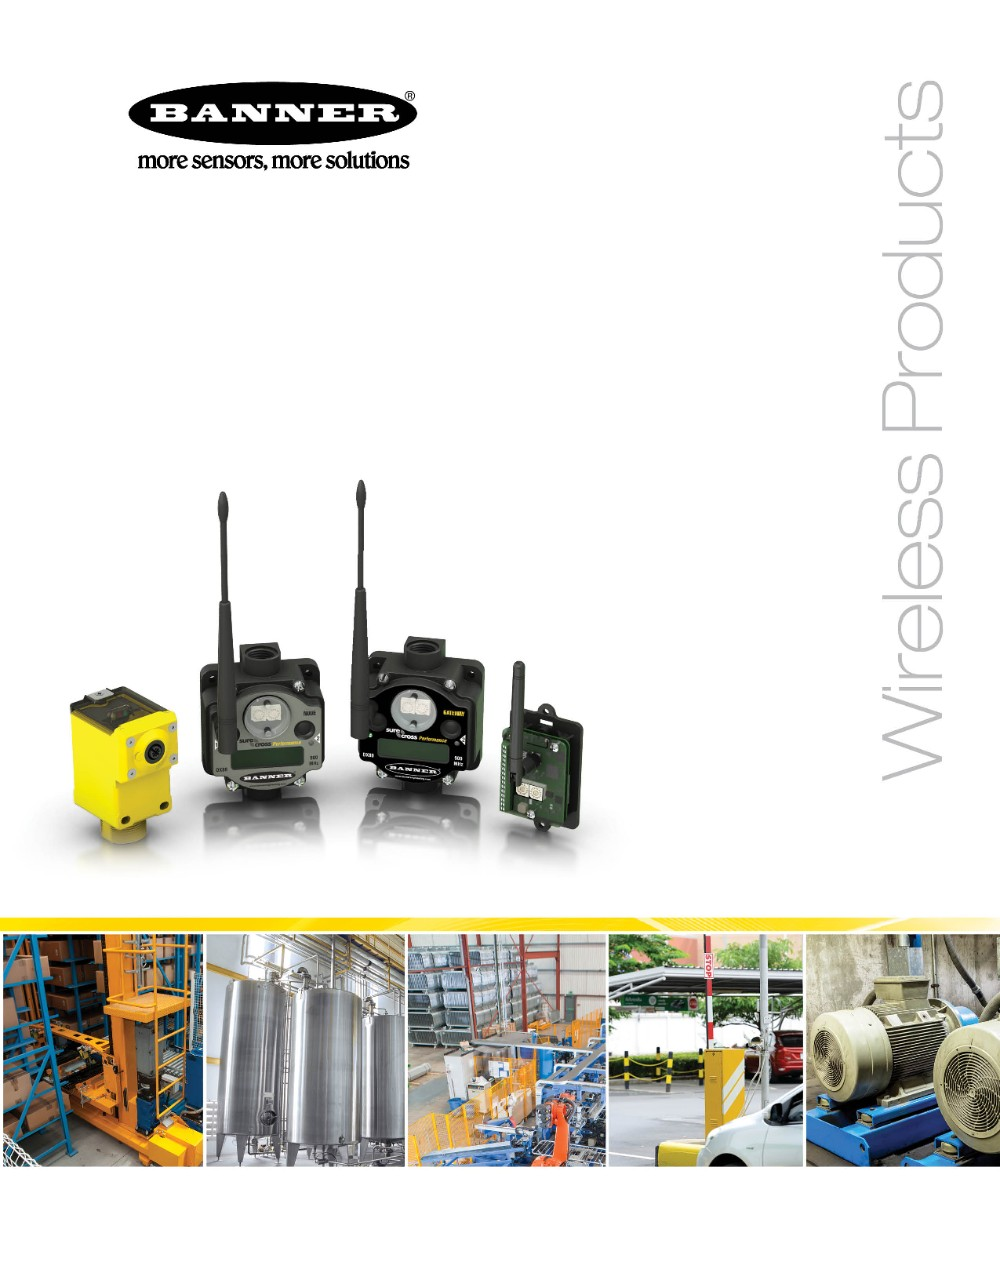 Banner Wireless Products Catalog